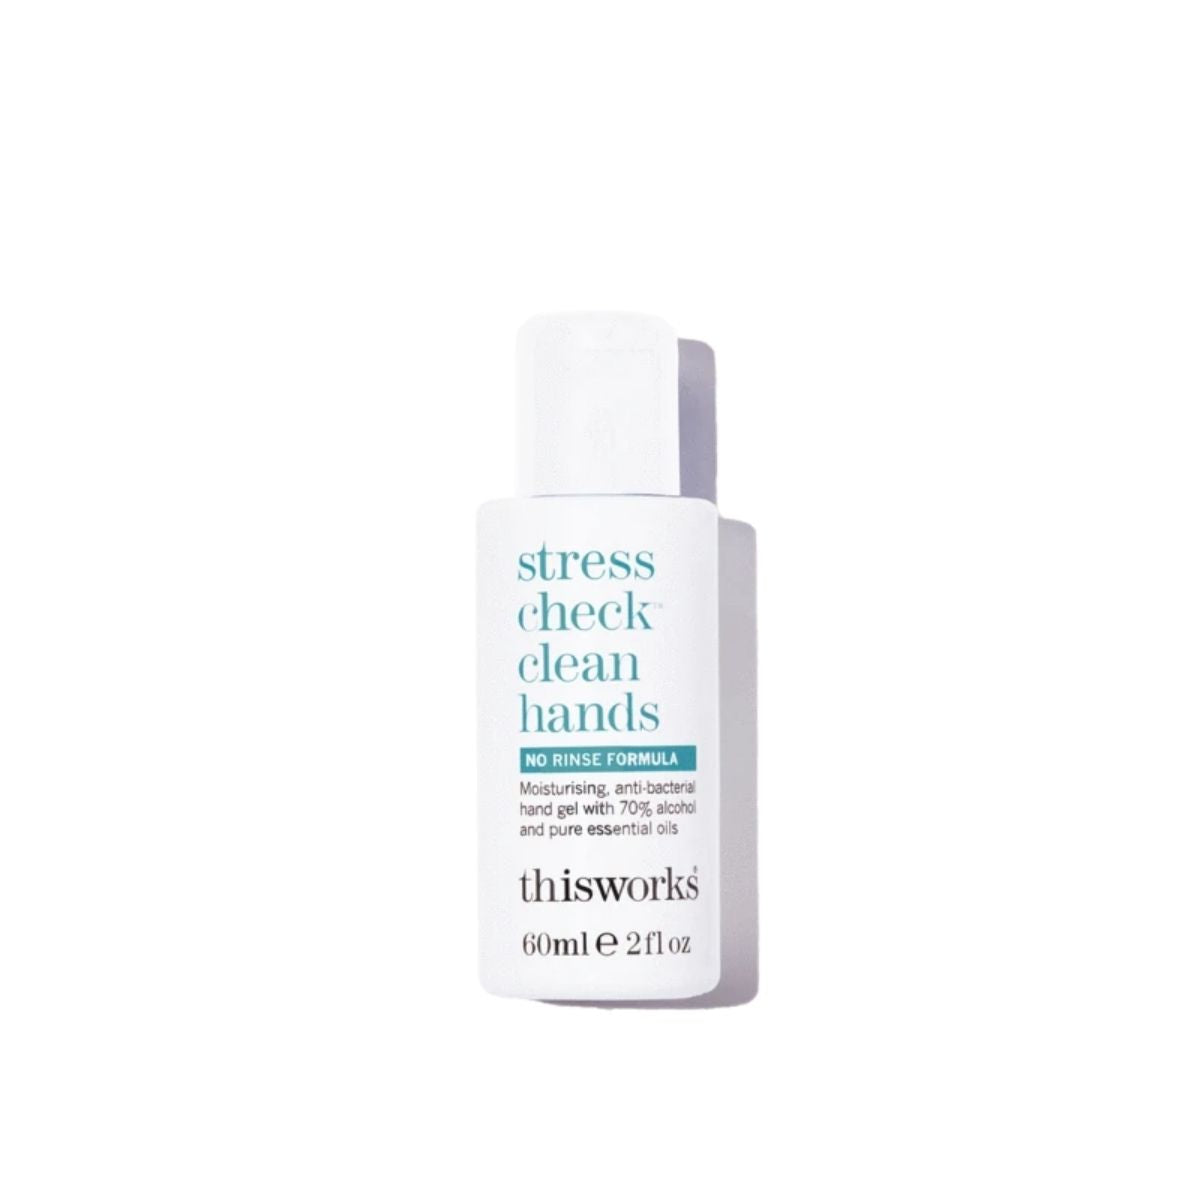 thisworks Stress Check Clean Hands 60ml